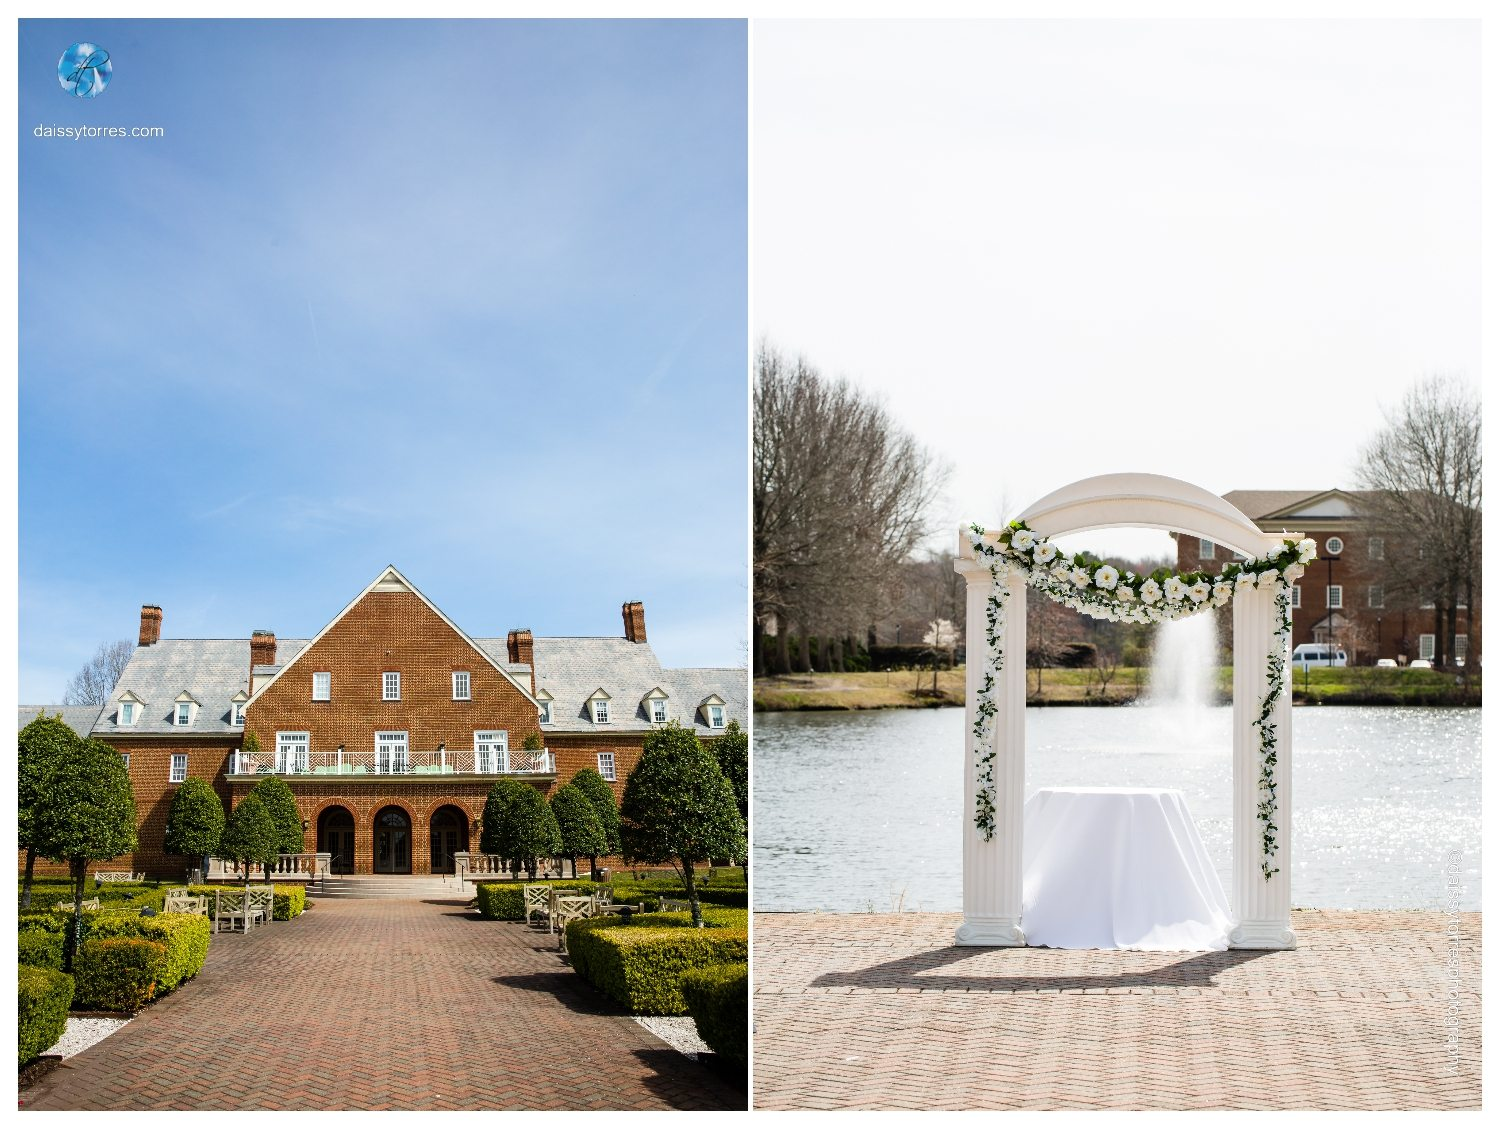 Founders Inn Wedding | Founders Inn Wedding Daissy Torres Photography